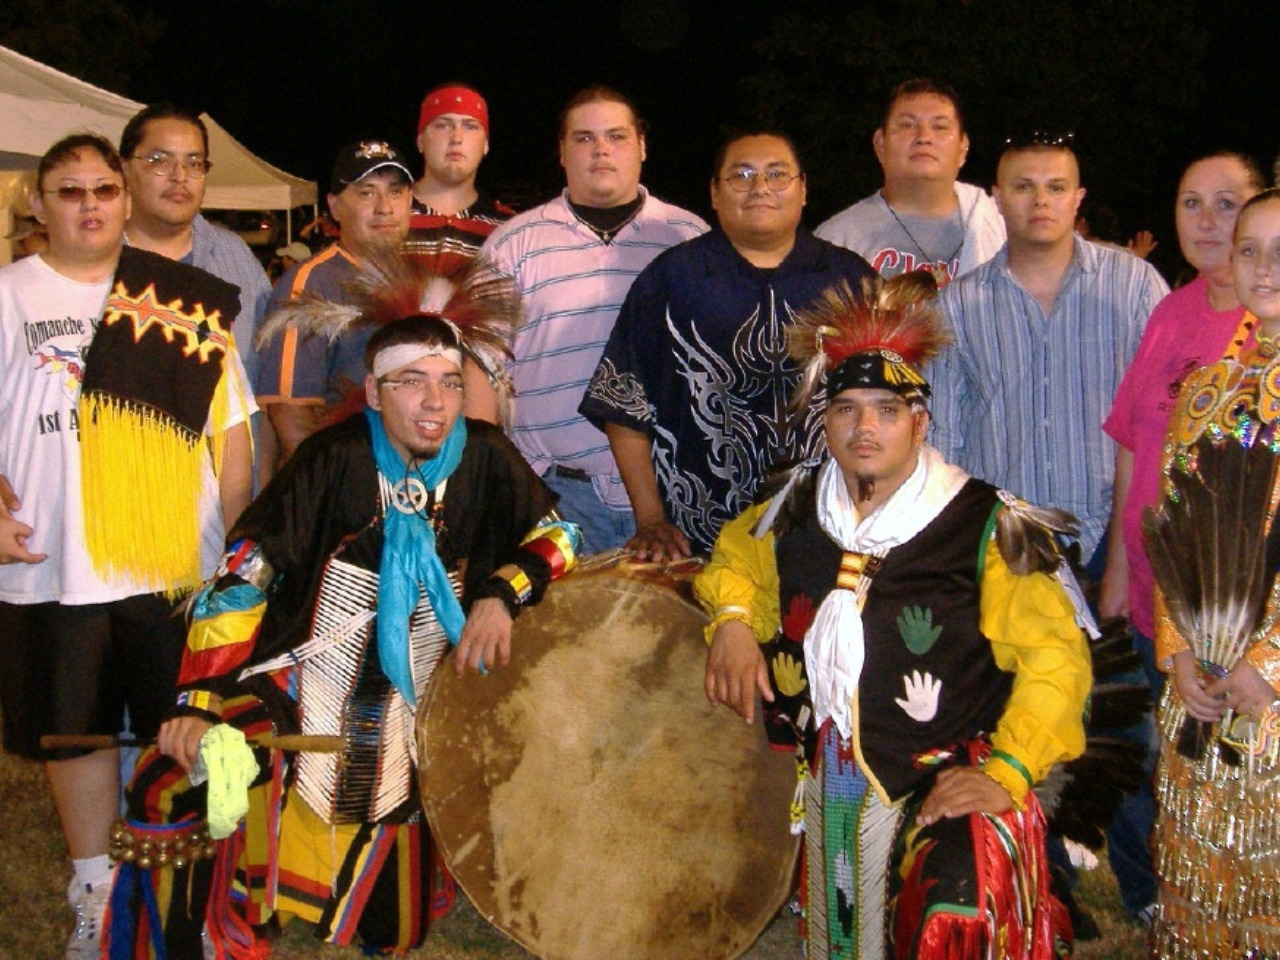 Bad Water Singers bought 3 powwow drums from Drum People